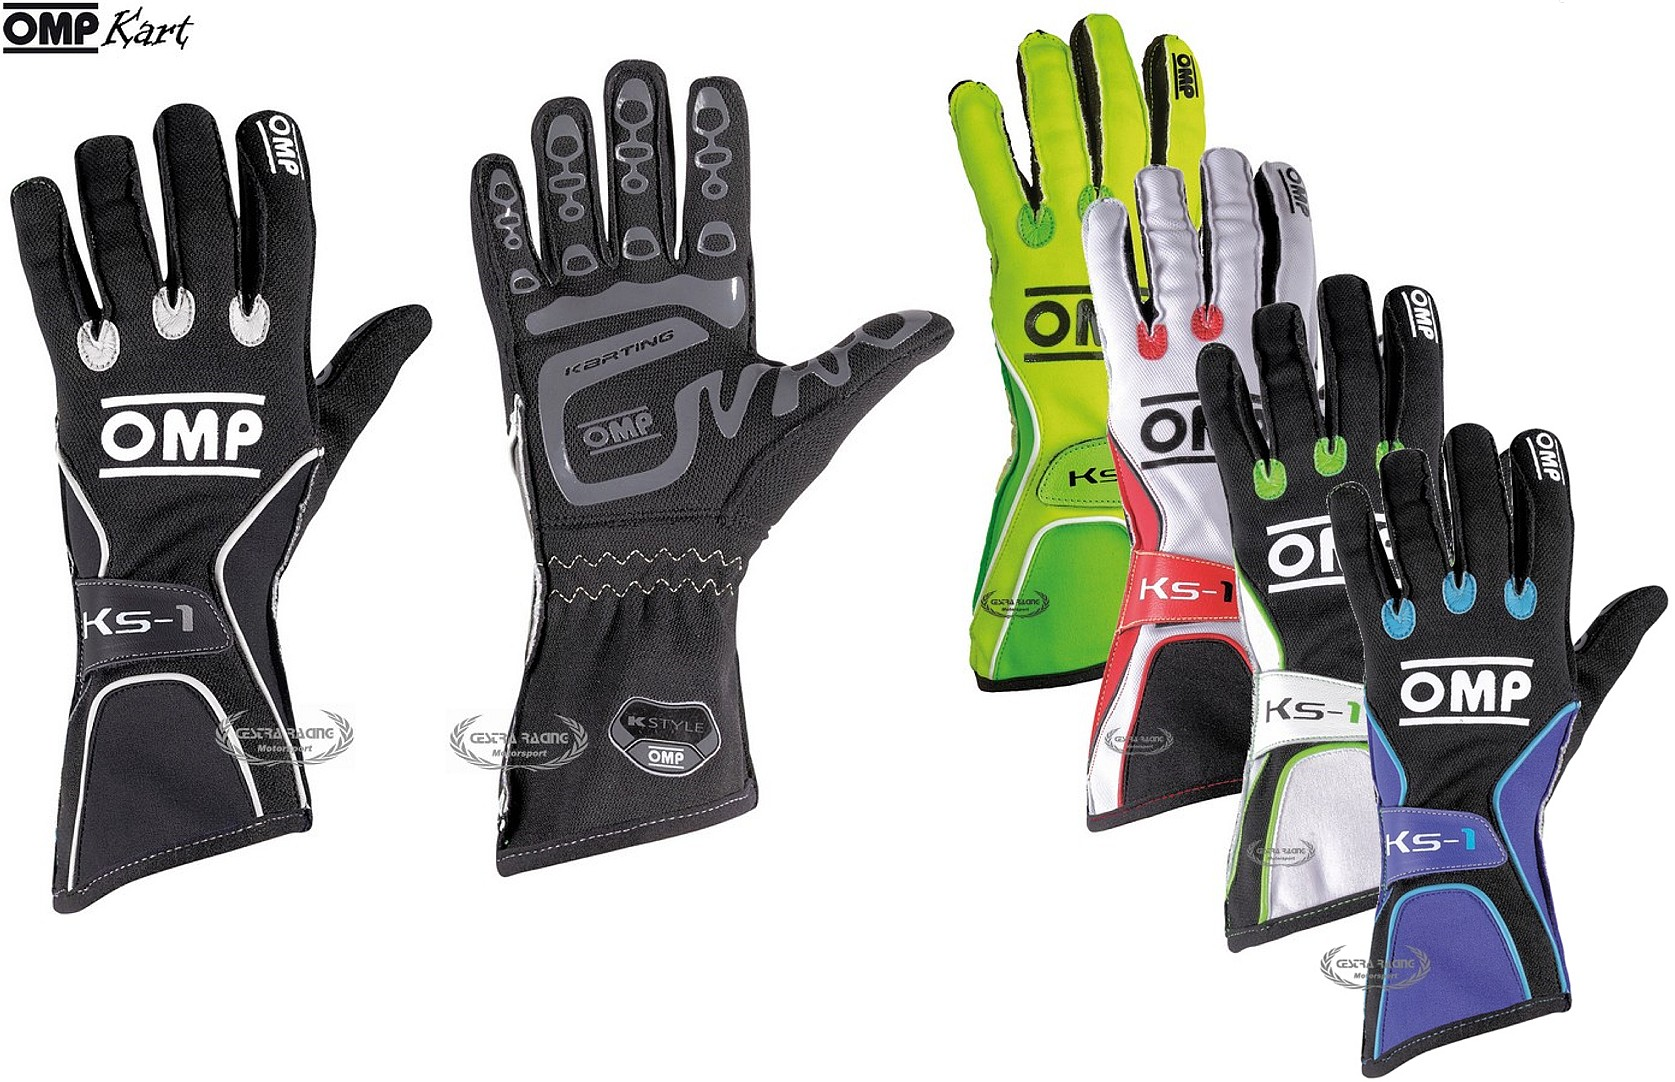 KS-1 Gloves - Taglia L